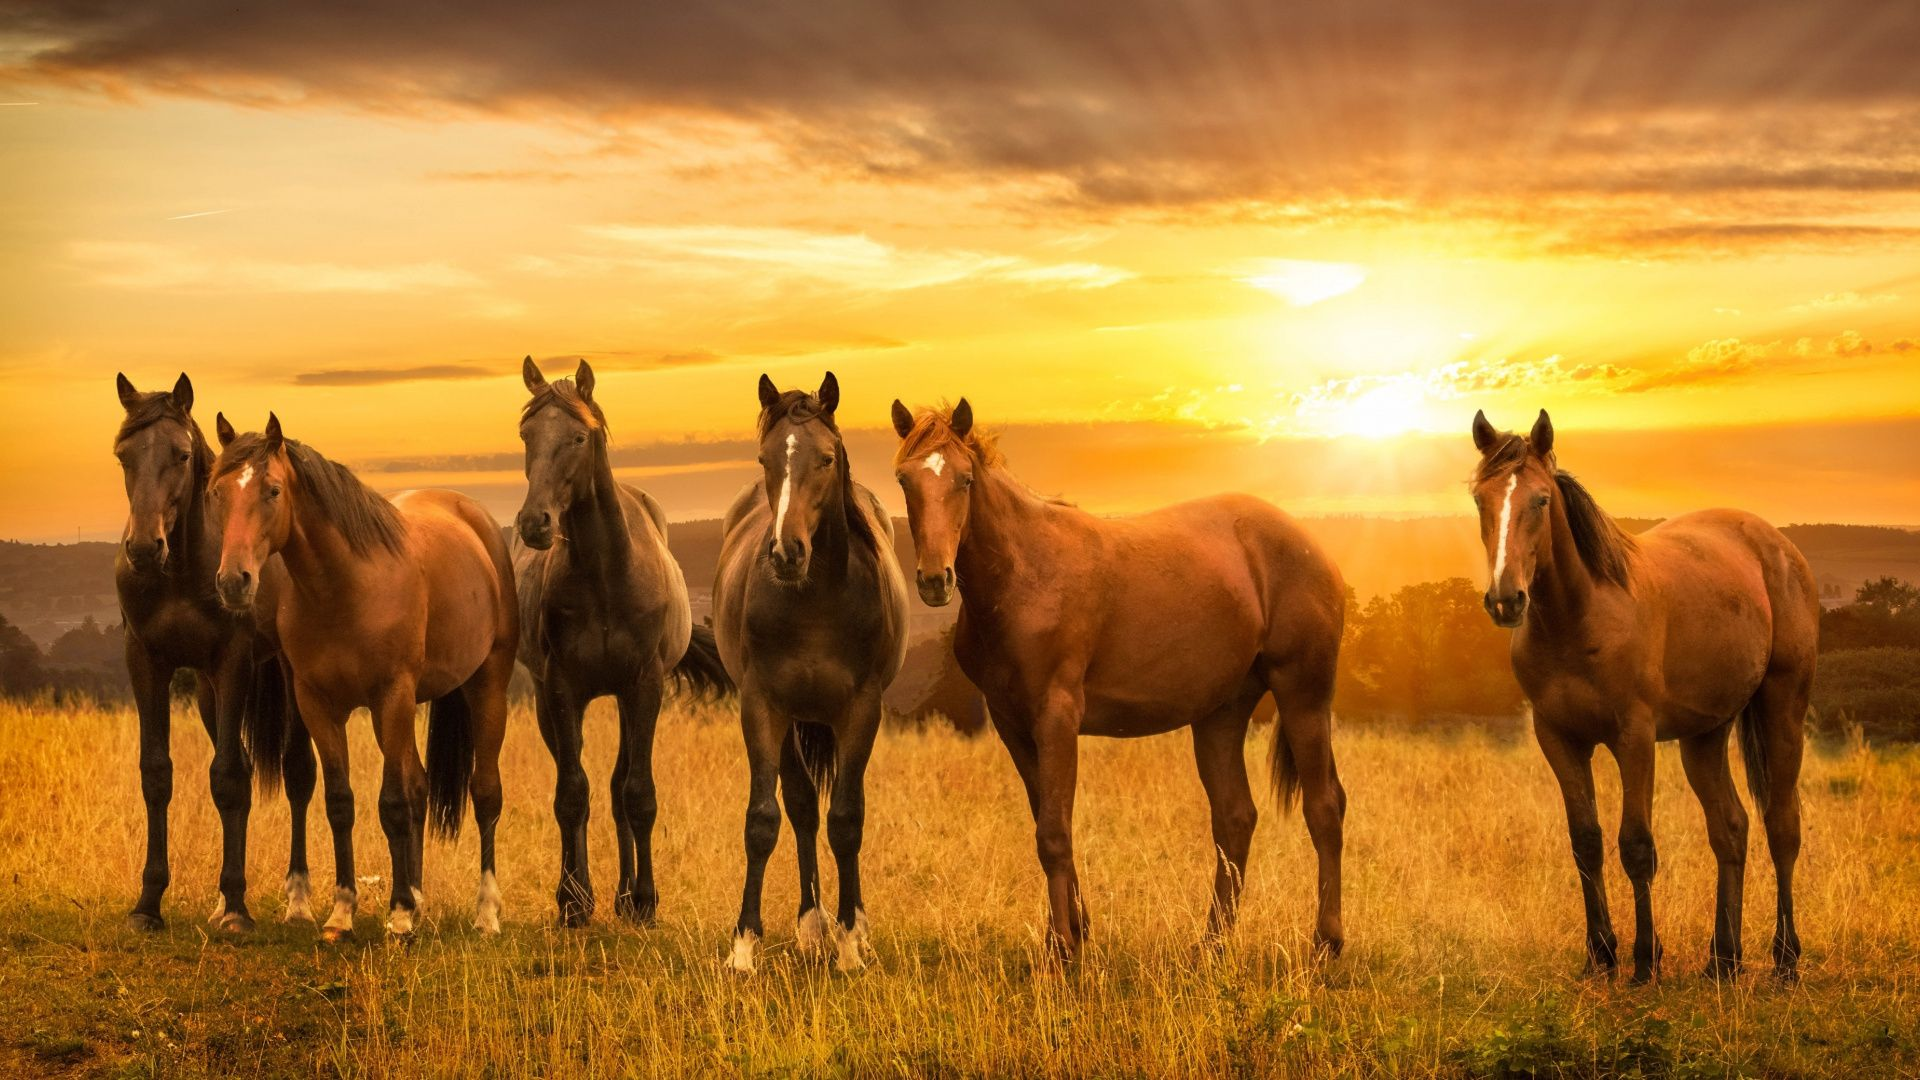 Pin By Silvia V D E On Pferde Pictures With Horses Horses Beautiful Horses